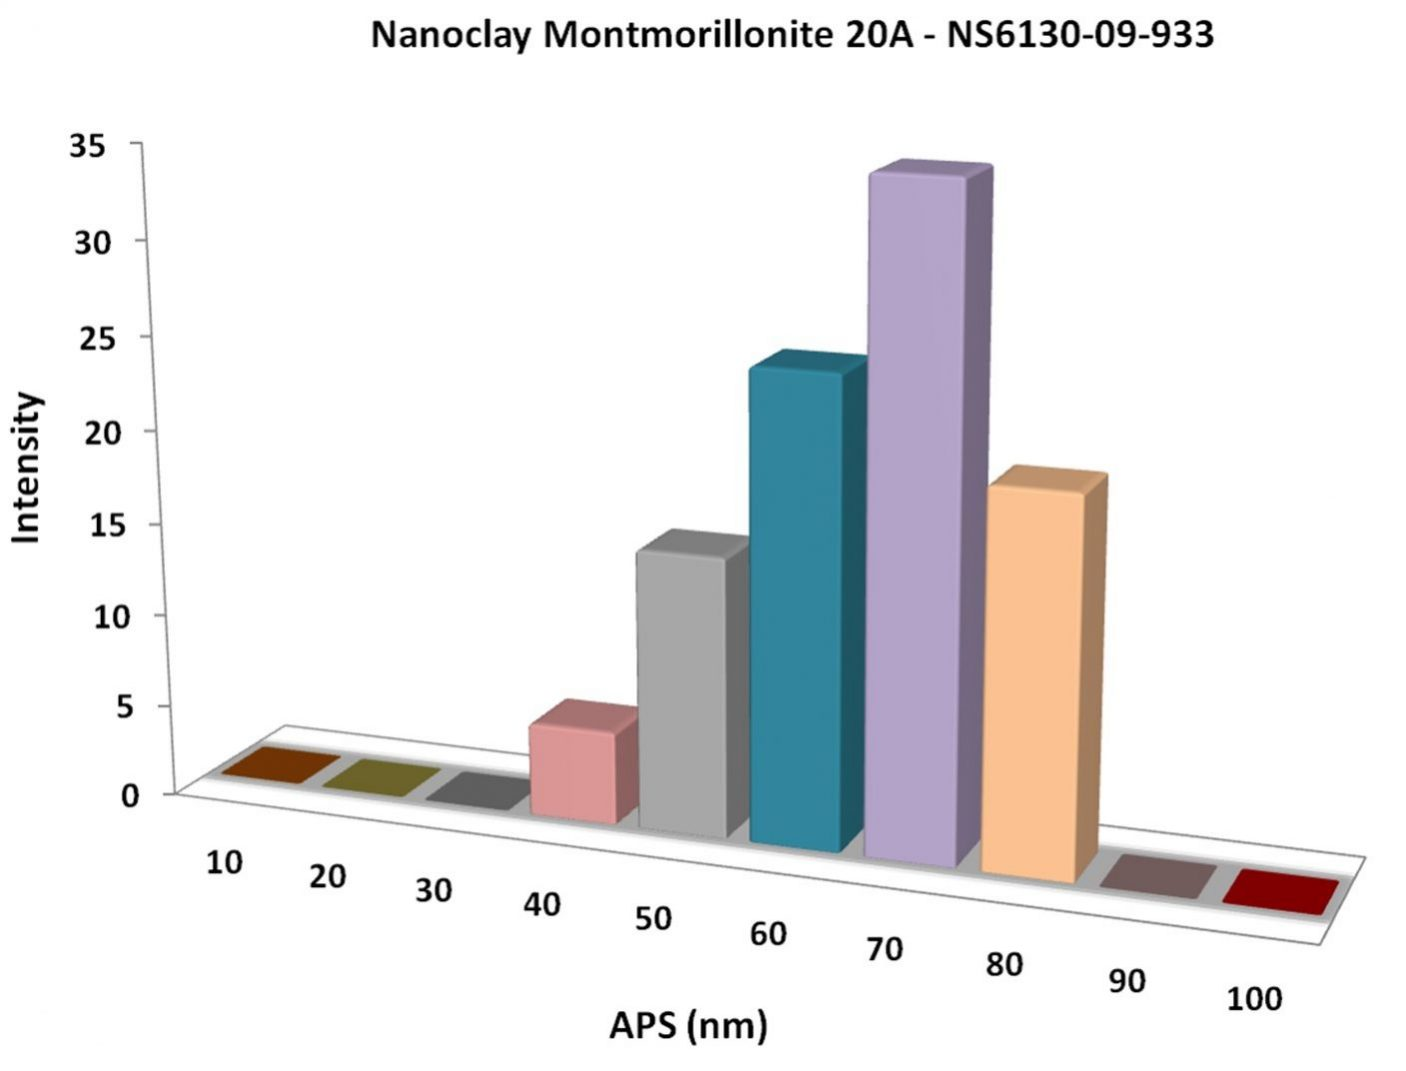 Particles Size Analysis - Nanoclay Montmorillonite 20A